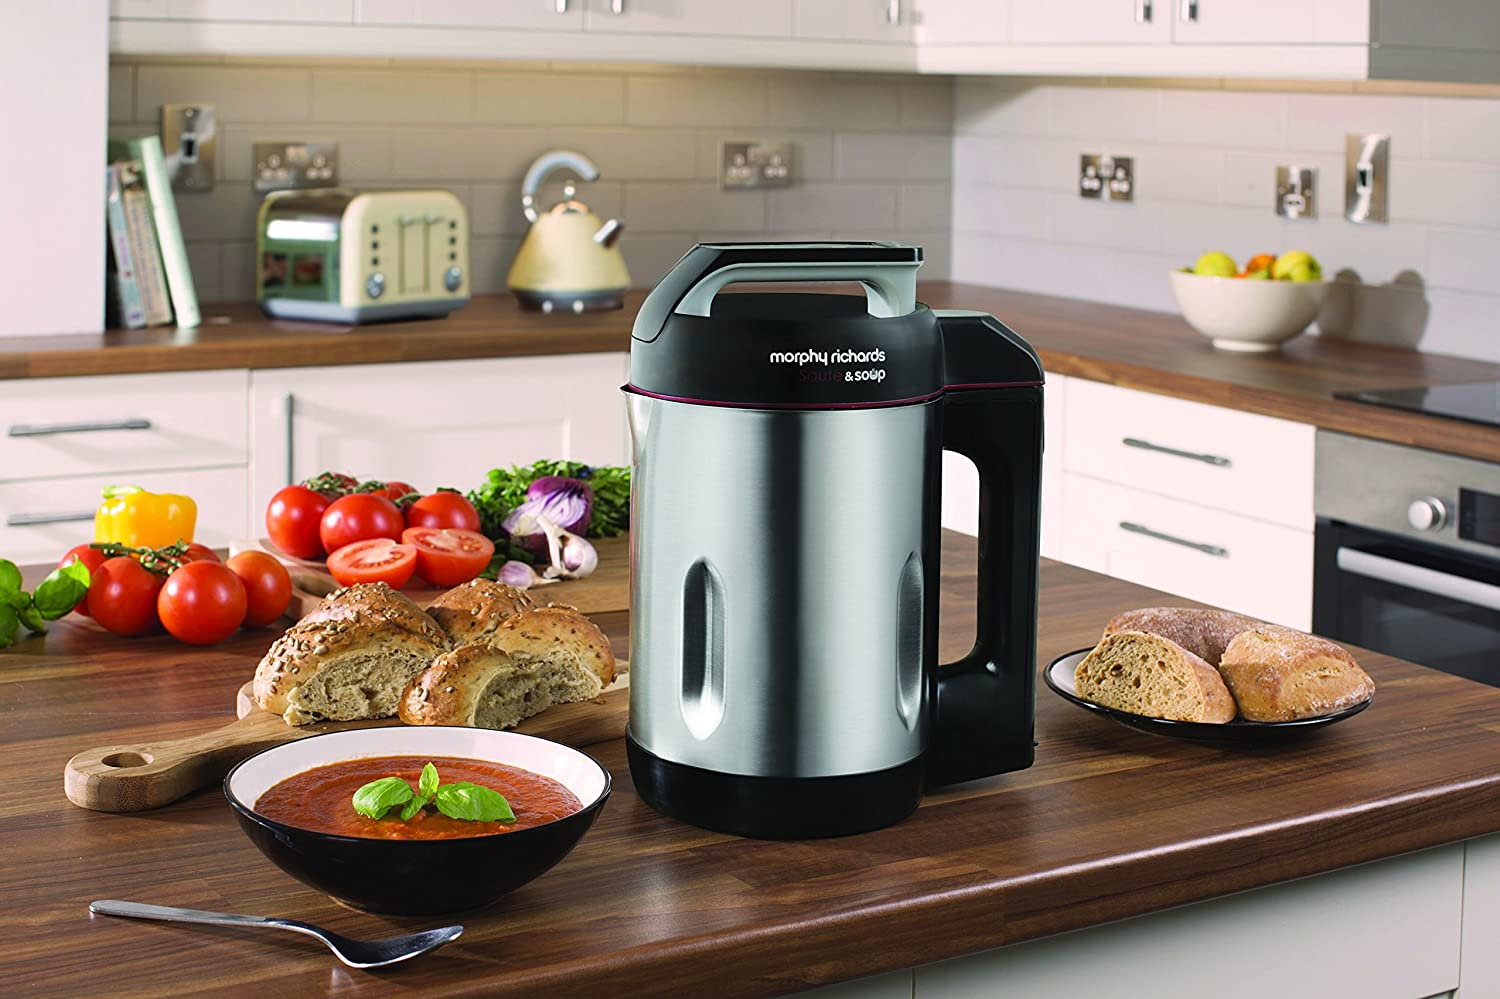 This Morphy Richards soup maker is an excellent choice and comes with a sauté function.